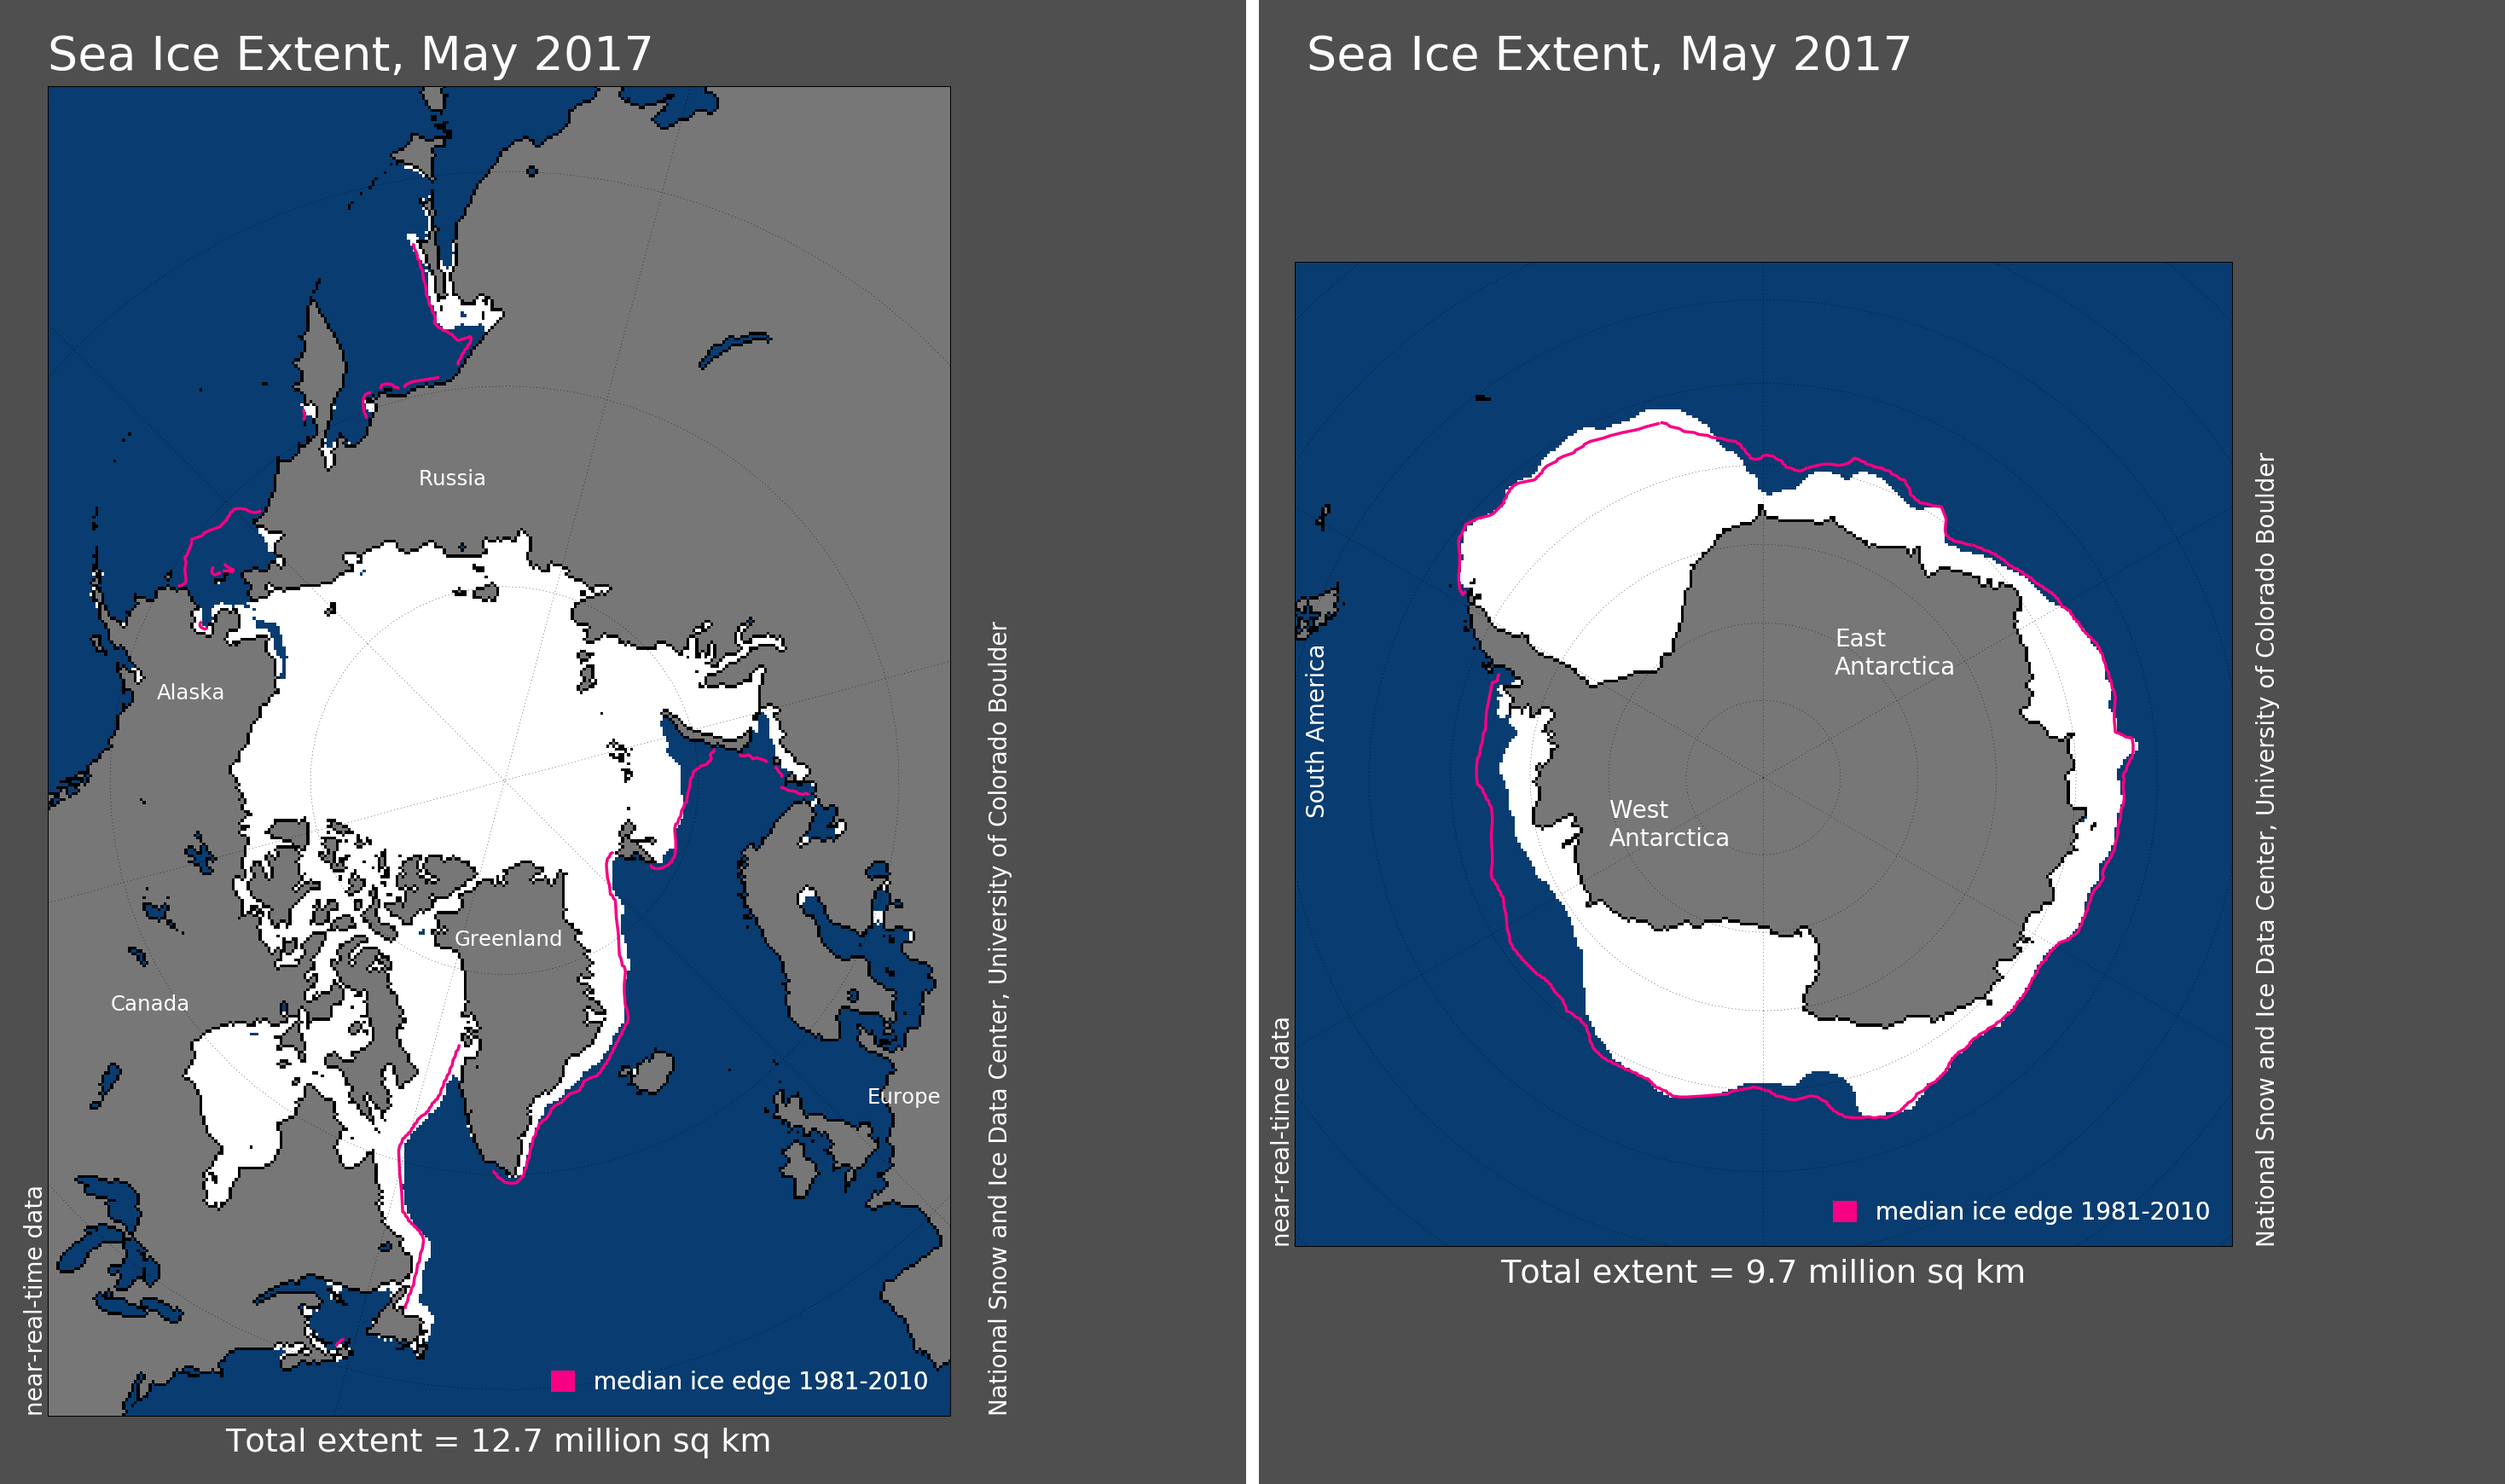 Maps of Arctic and Antarctic sea ice extent in May 2017